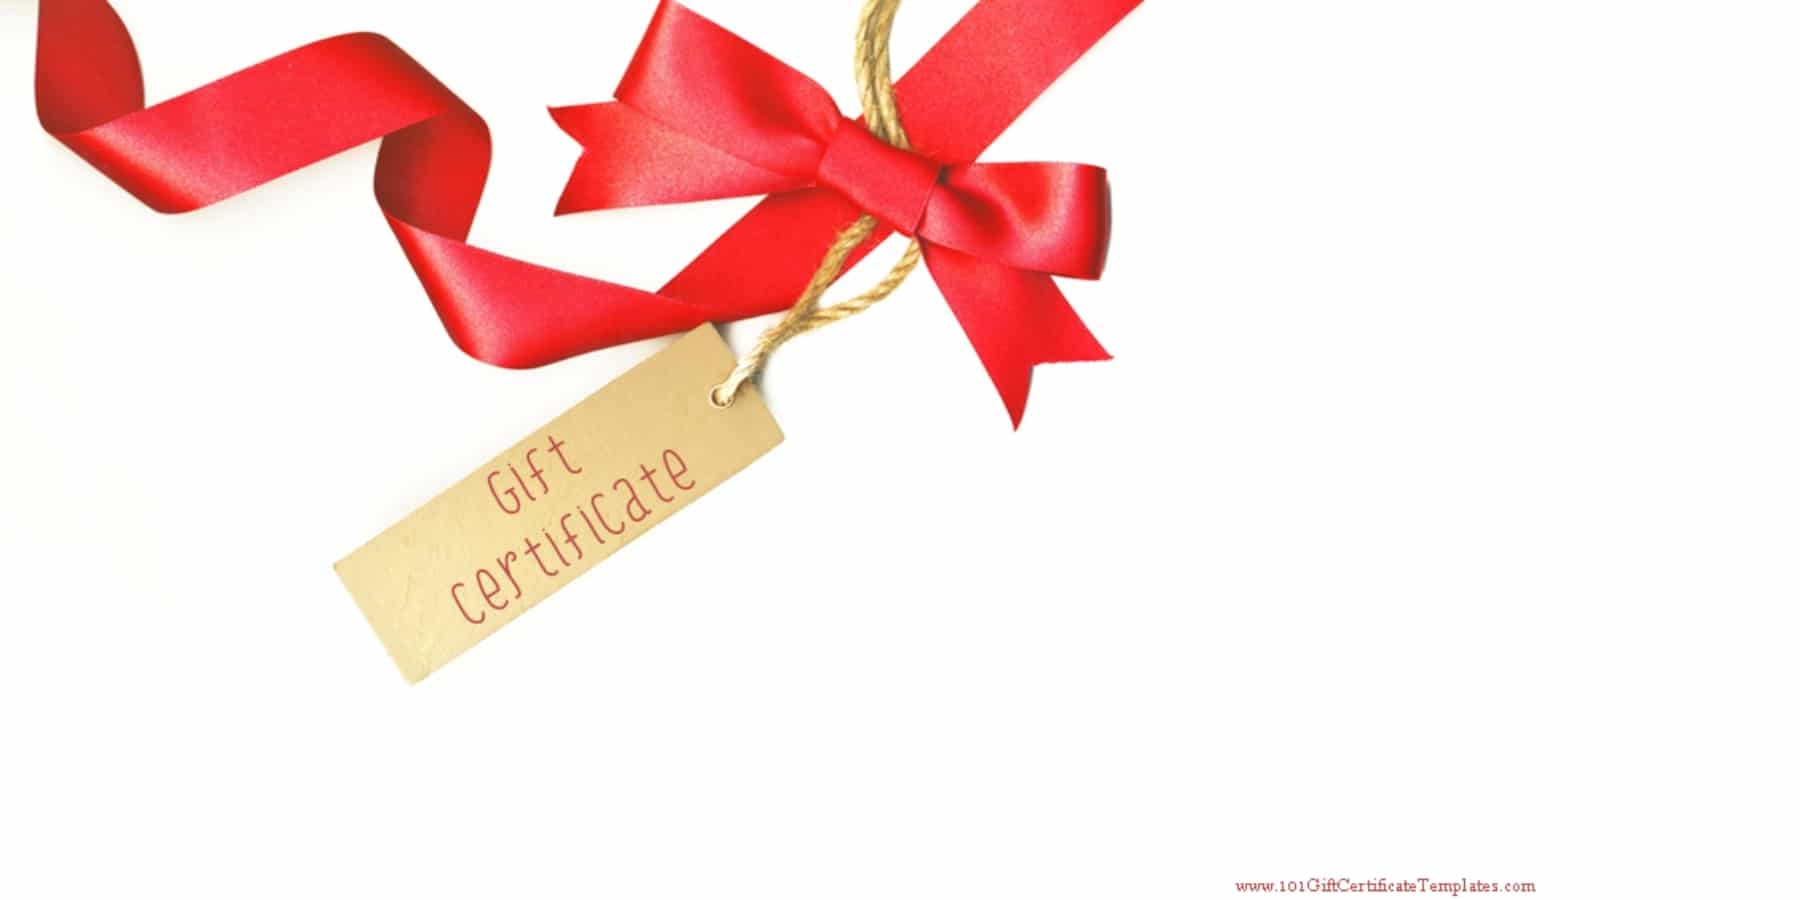 Gift Card Which Can Be Customized In Any Way With Our Gift Card Maker  Make Your Own Gift Certificates Free